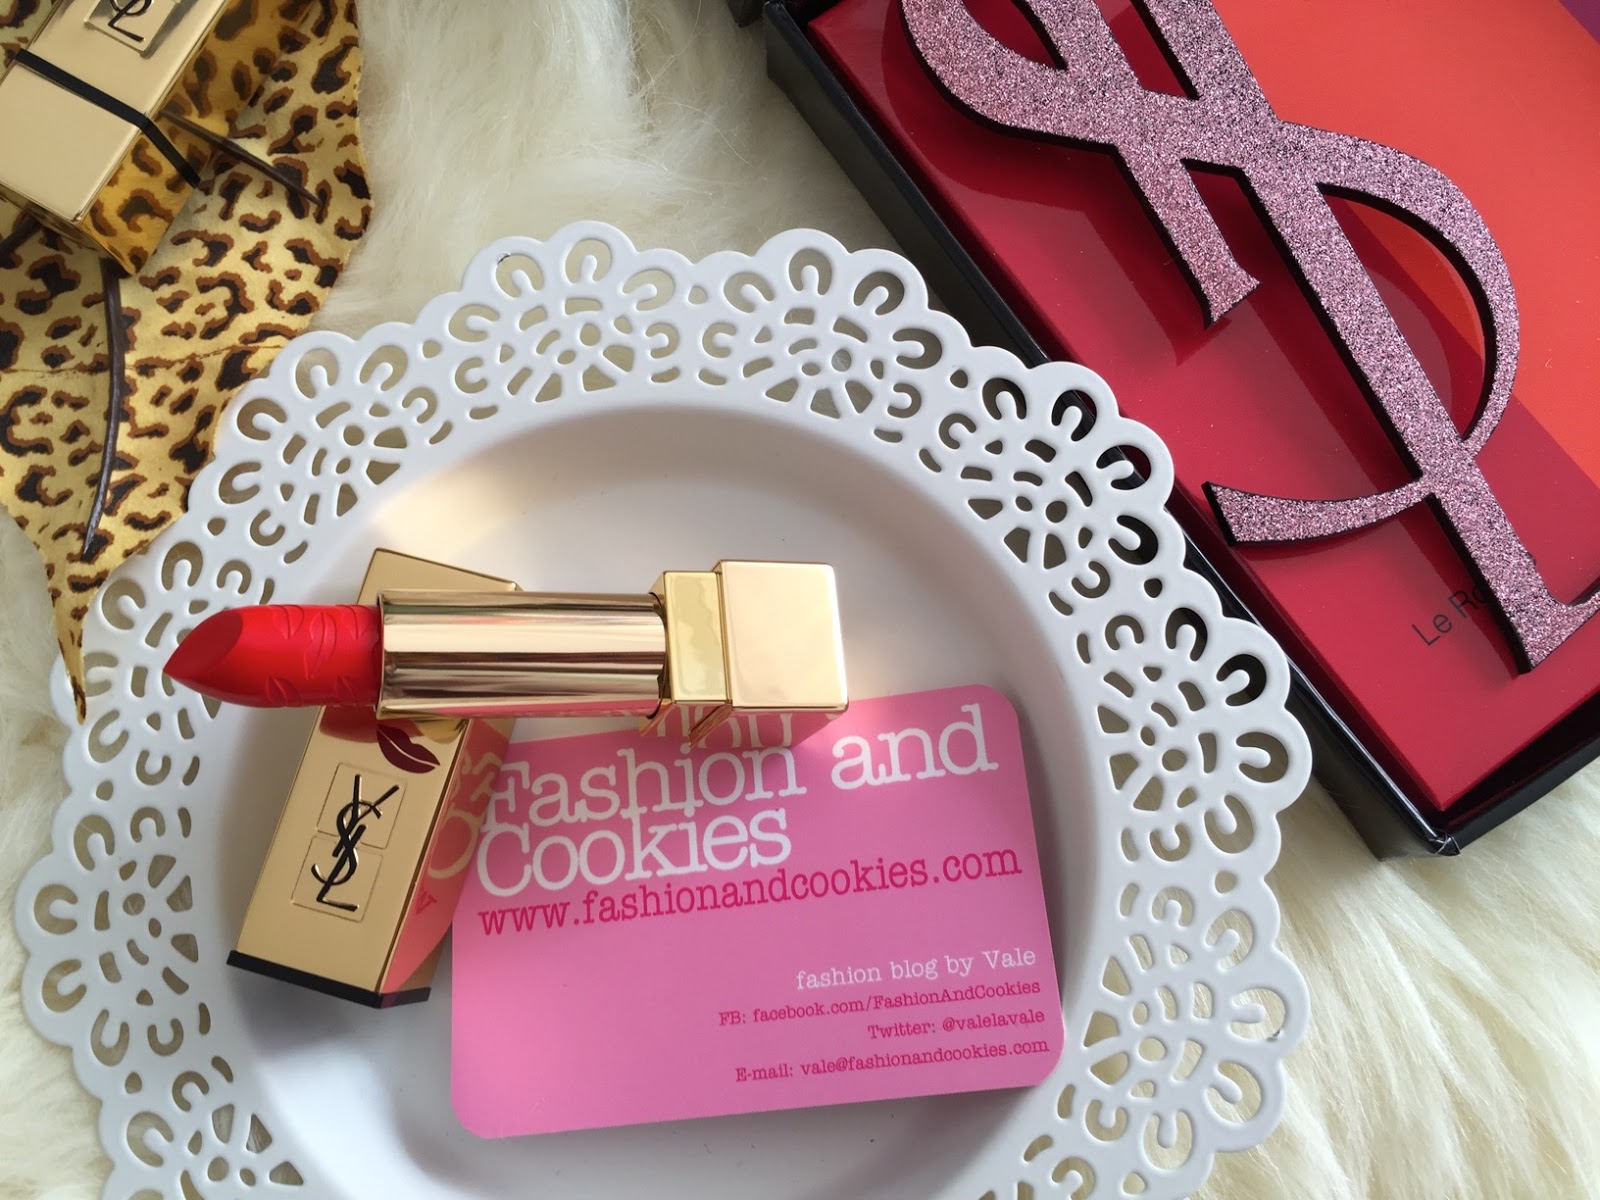 Yves Saint Laurent Rouge Pur Couture Kiss & Love Limited Edition, n. 1 Le Rouge on Fashion and Cookies fashion and beauty blog, beauty blogger